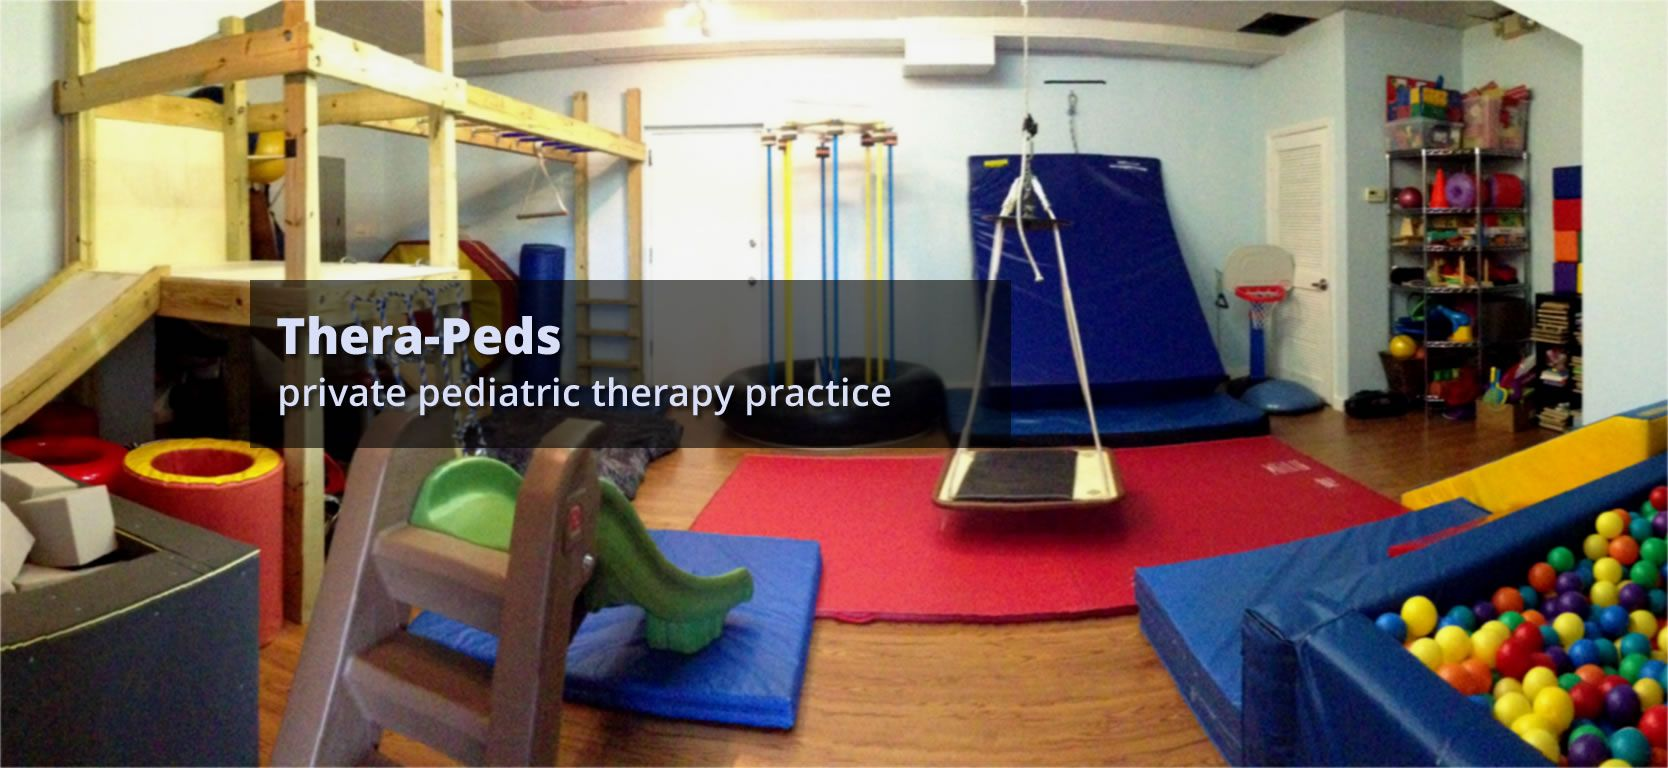 therapeds-private-pediatric-therapy-practice